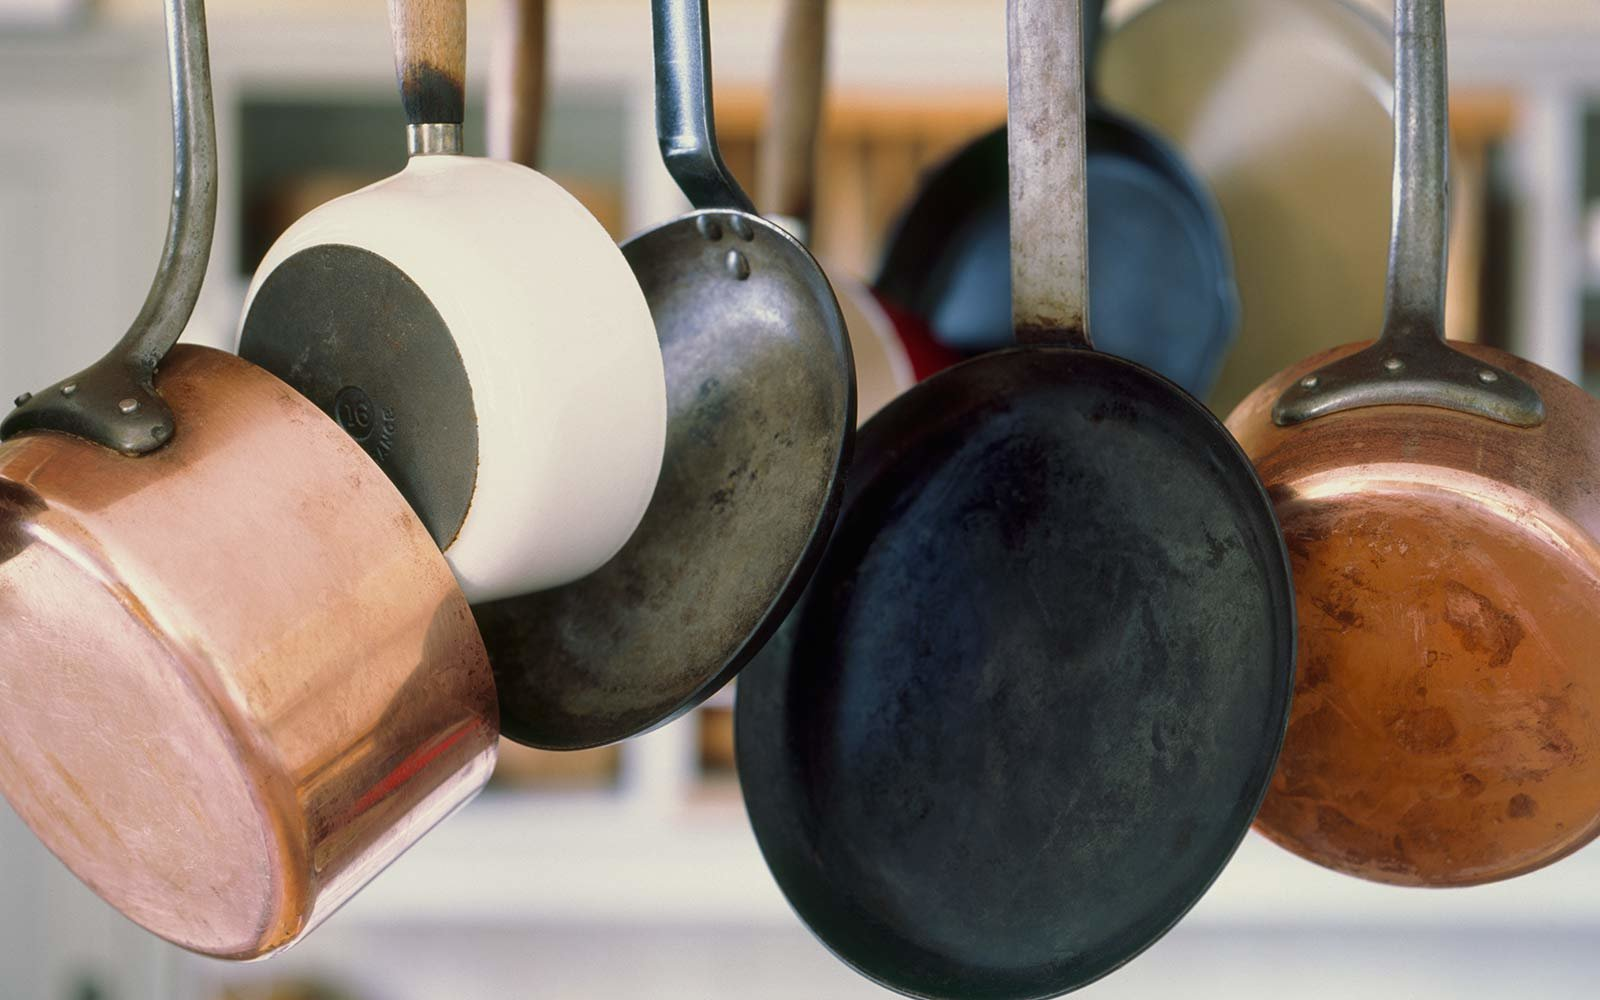 Are You Using the Right Skillet for the Job?